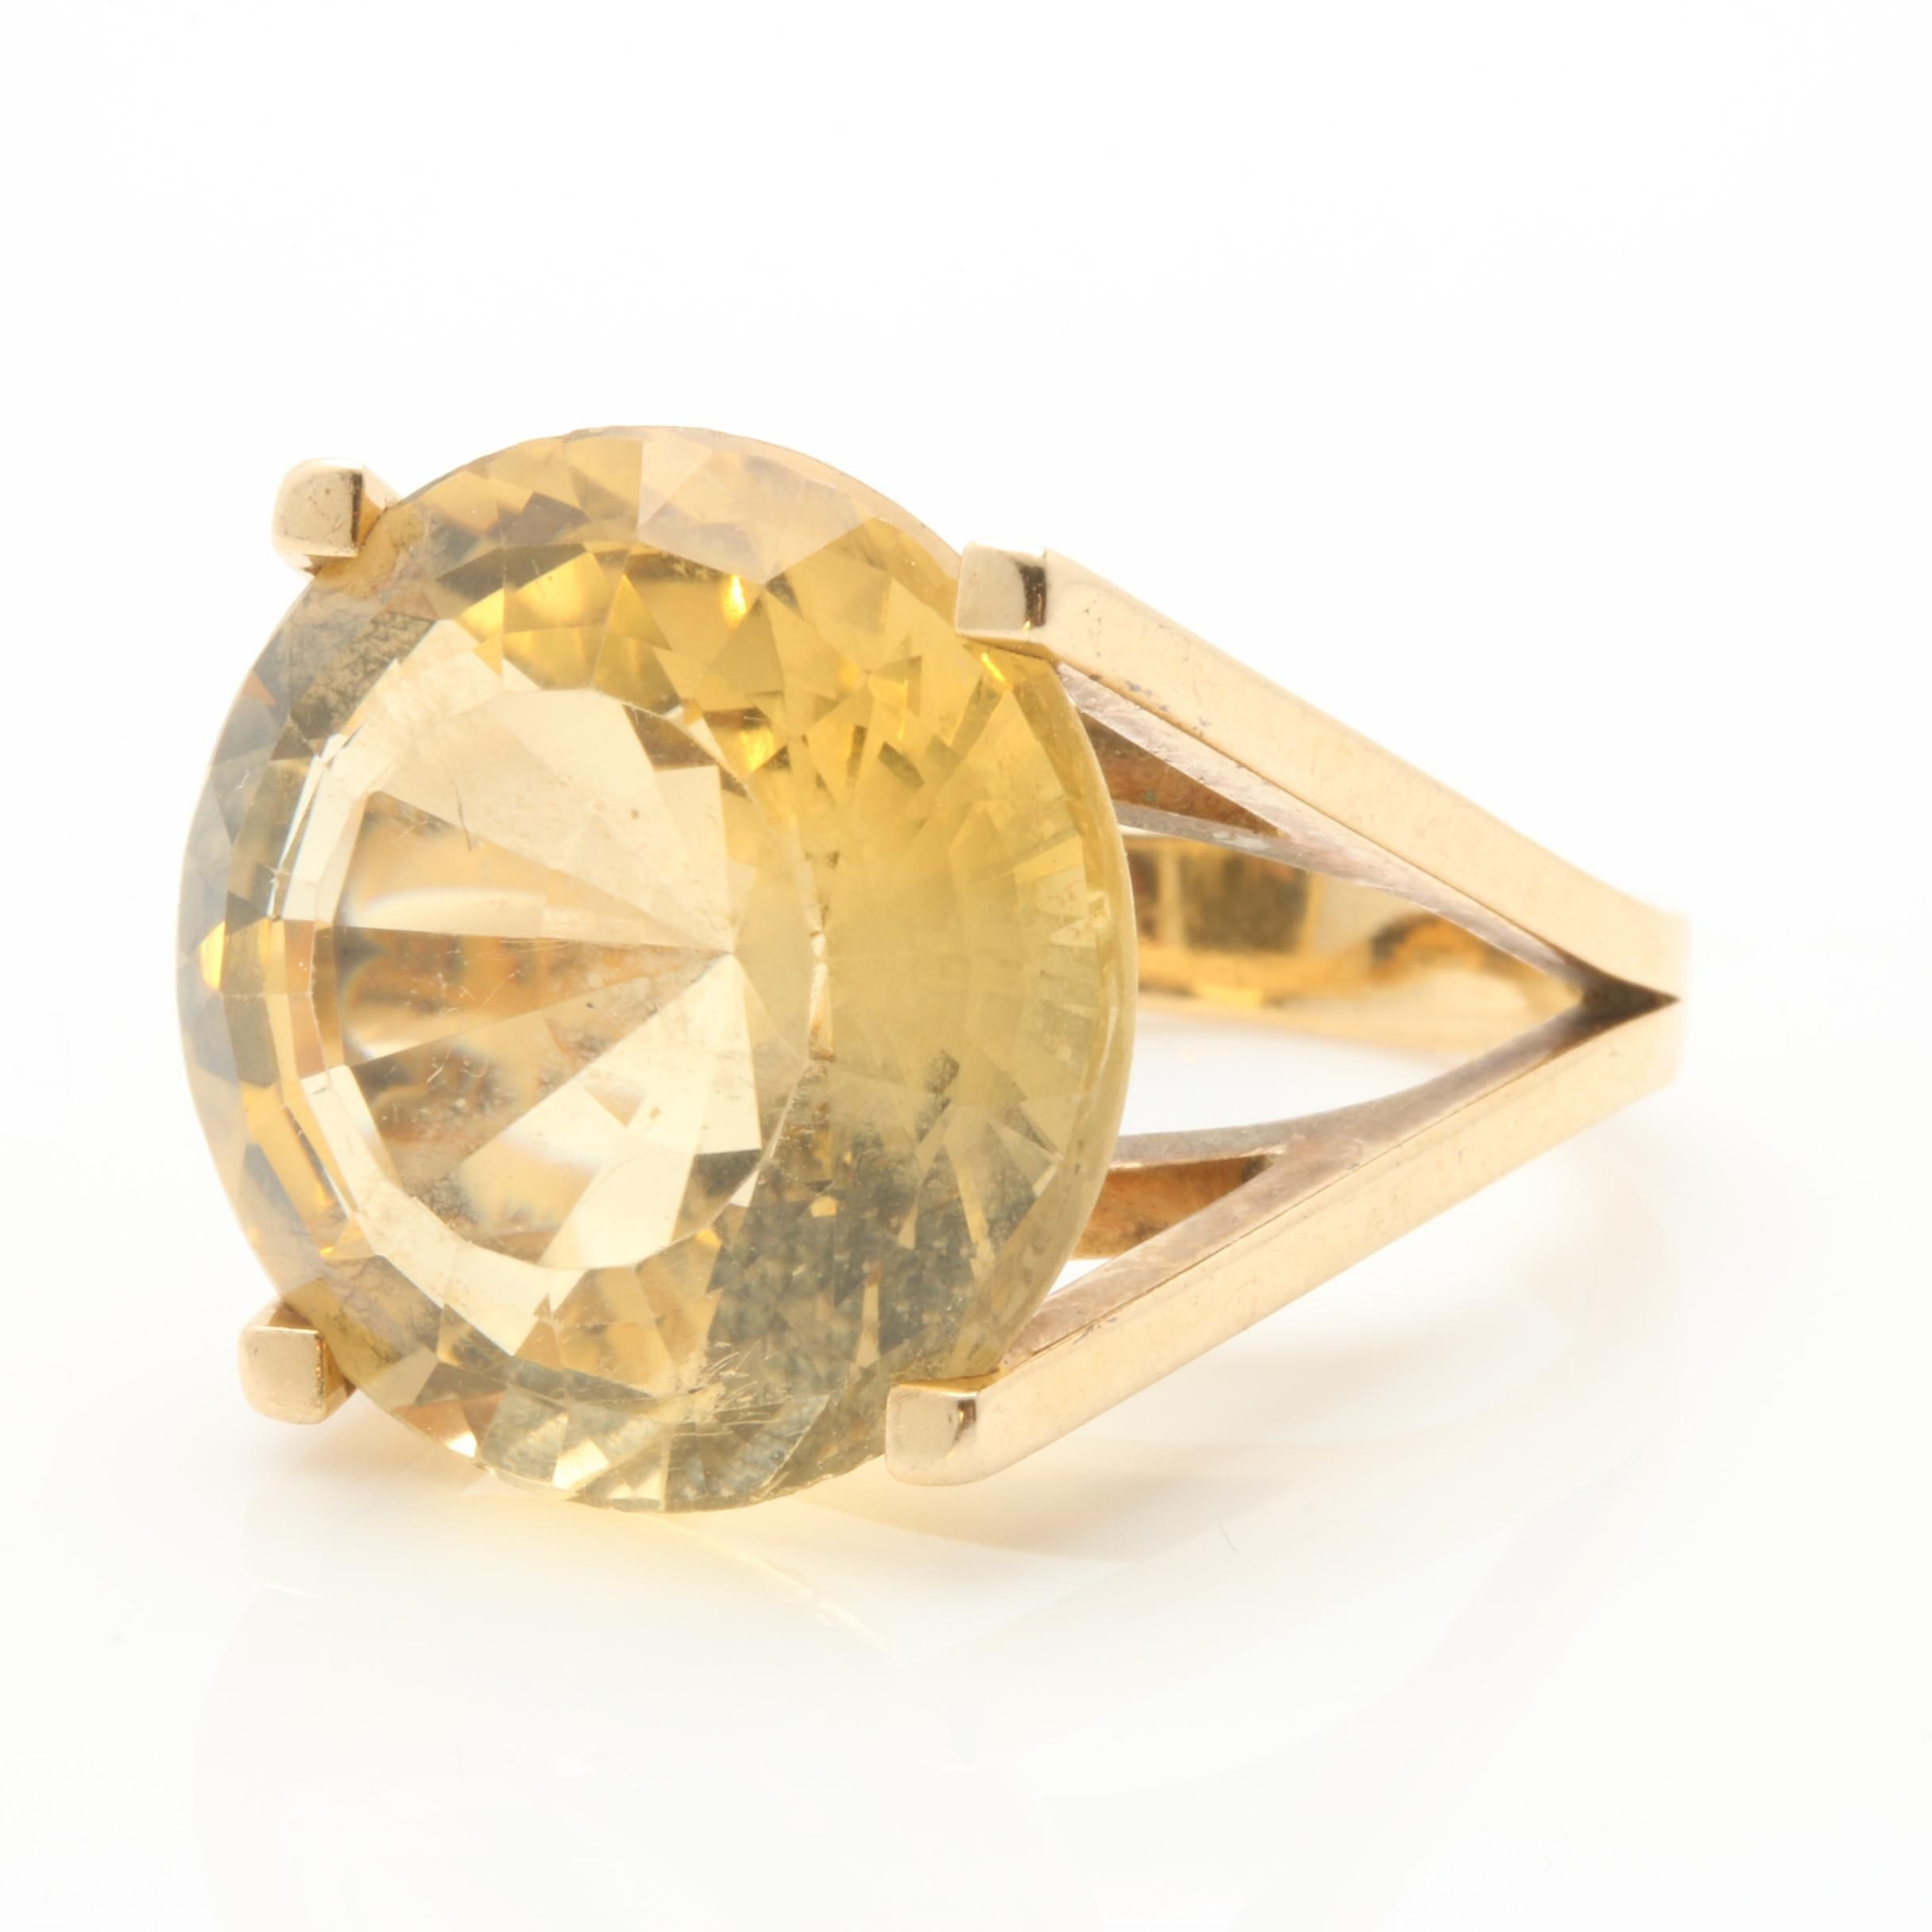 14K Yellow Gold 22.58 CT Citrine Ring